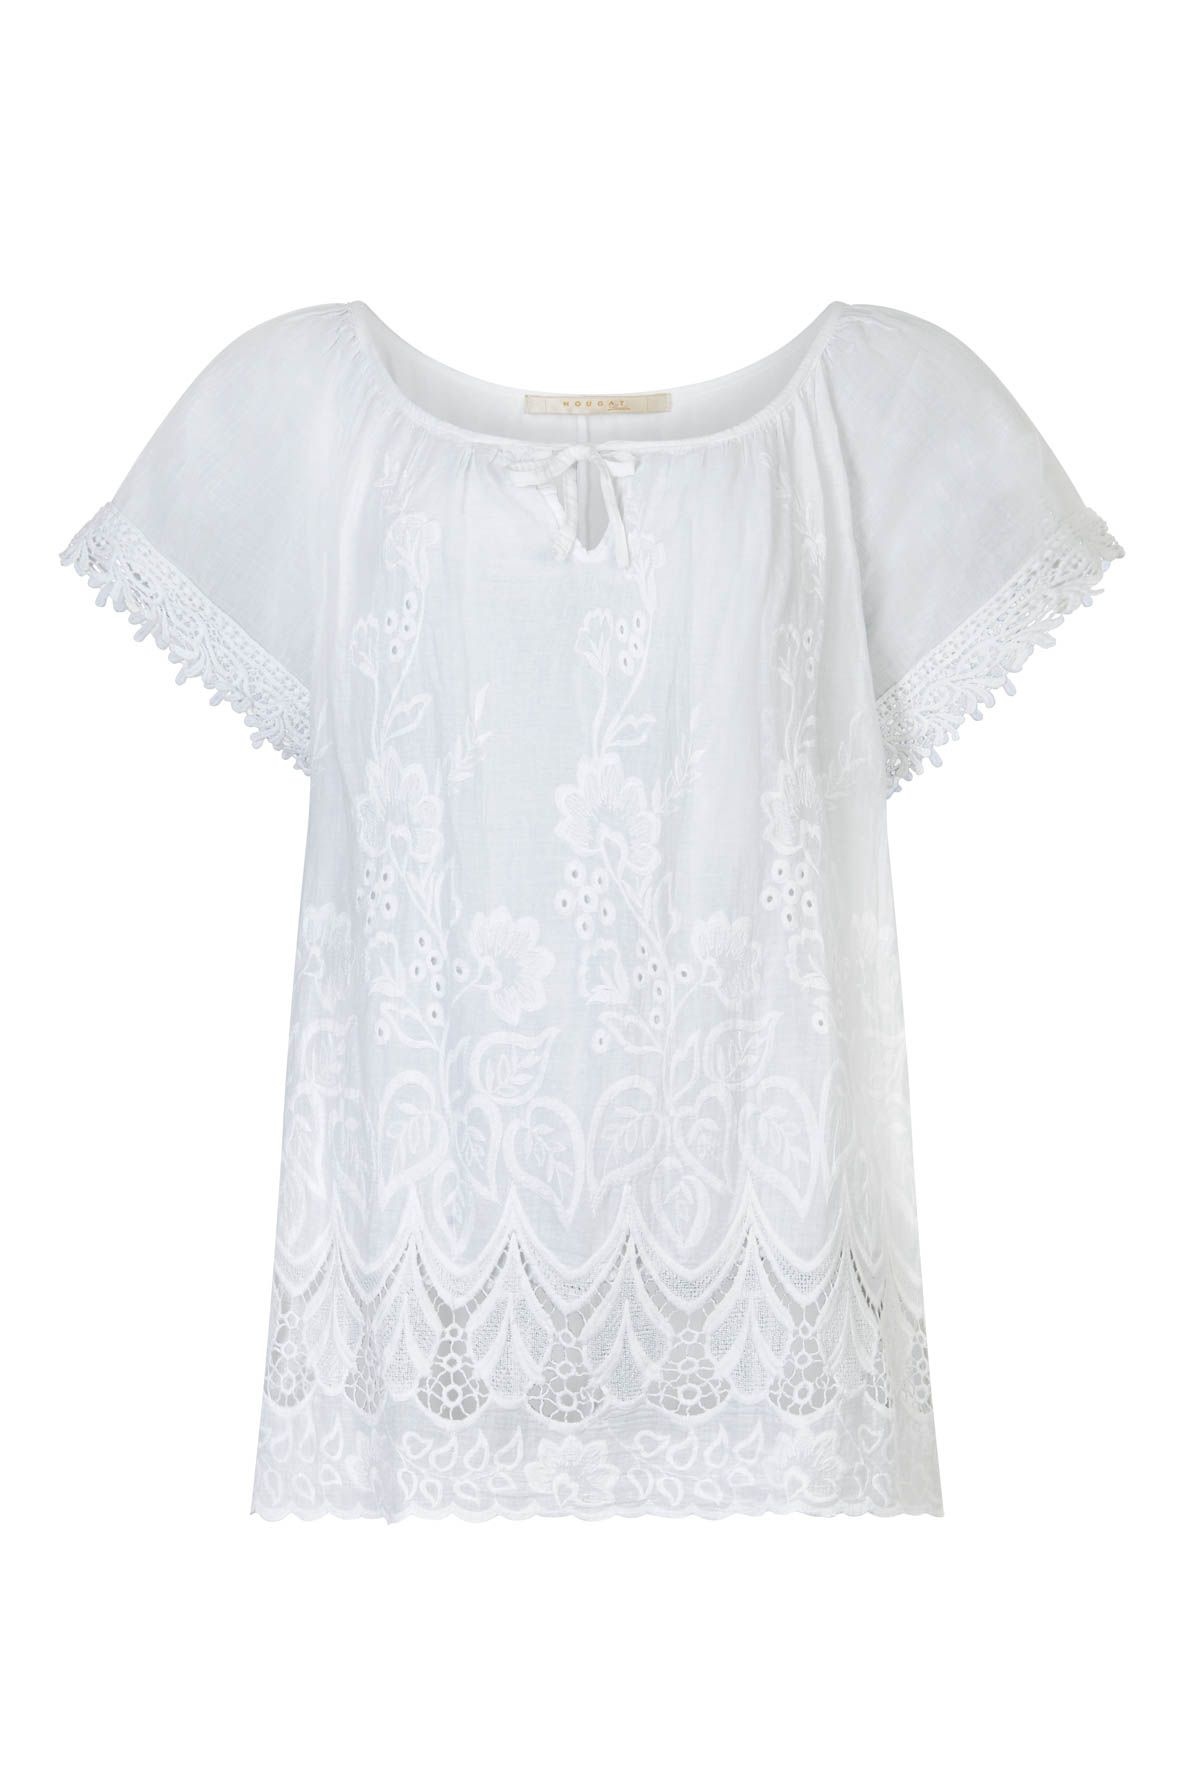 Nougat London Foxglove Embroidered Top, White